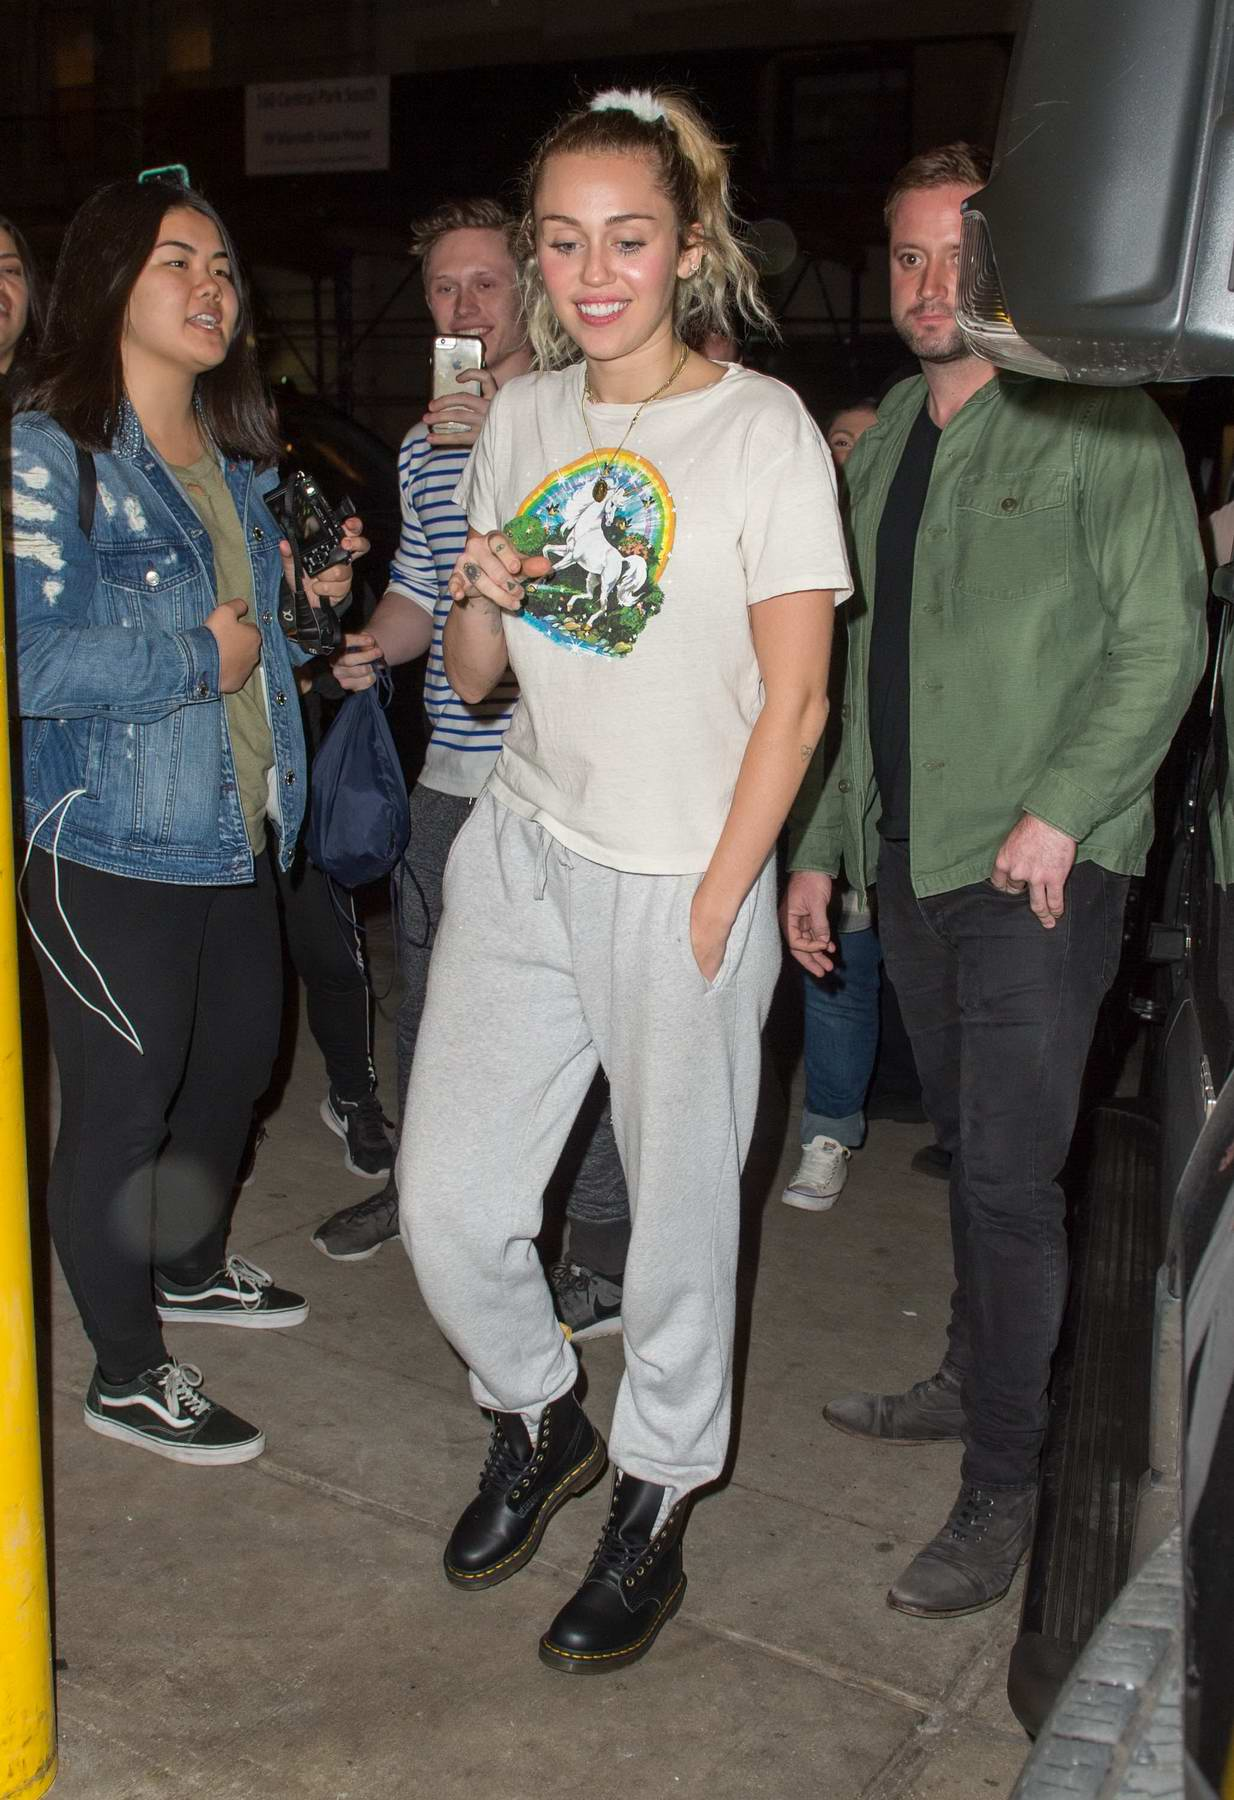 Miley Cyrus arrives back in sweatpants after rehearsing at NBC studios in New York City